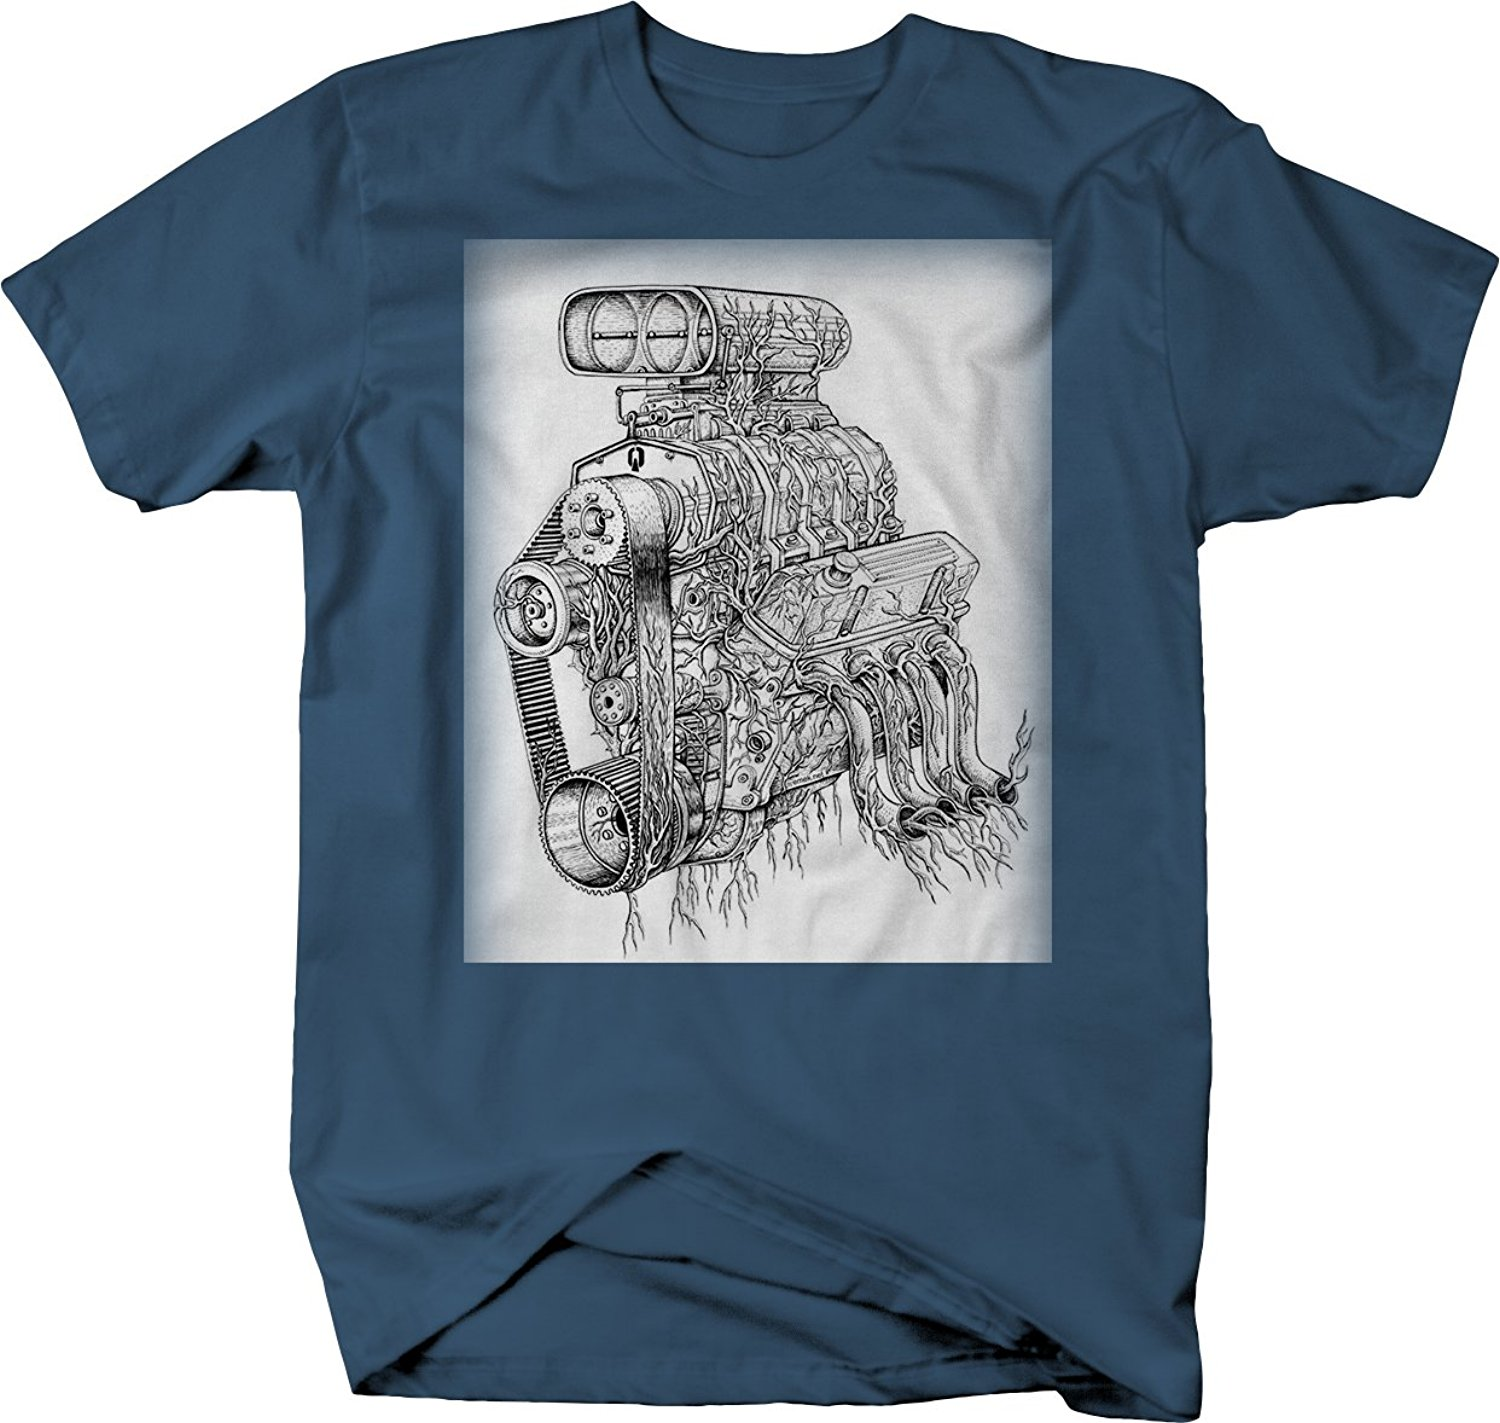 Short Sleeve Cool Casual Big Block Garage Art <font><b>V8</b></font> Supercharger Racer Motor Hotrod <font><b>Tshirt</b></font> O-Neck T Shirt Men image